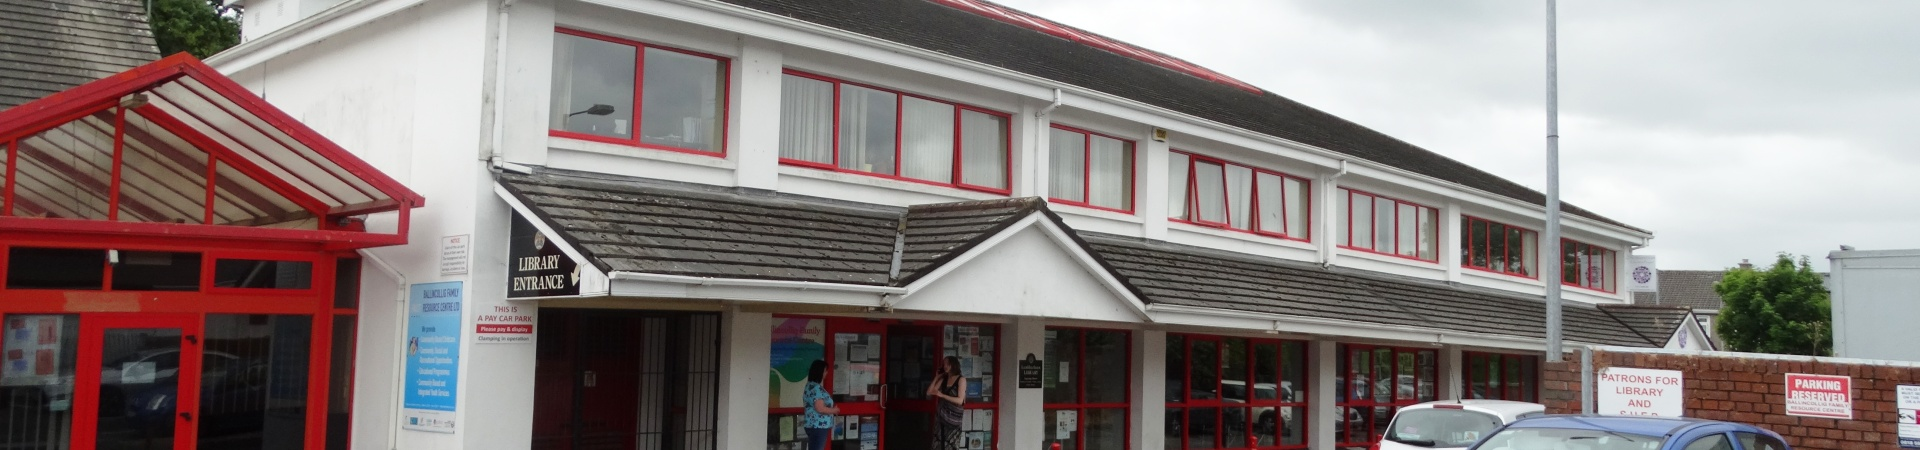 Ballincollig Carrigaline MD LAP confx.co.uk - County Cork Local